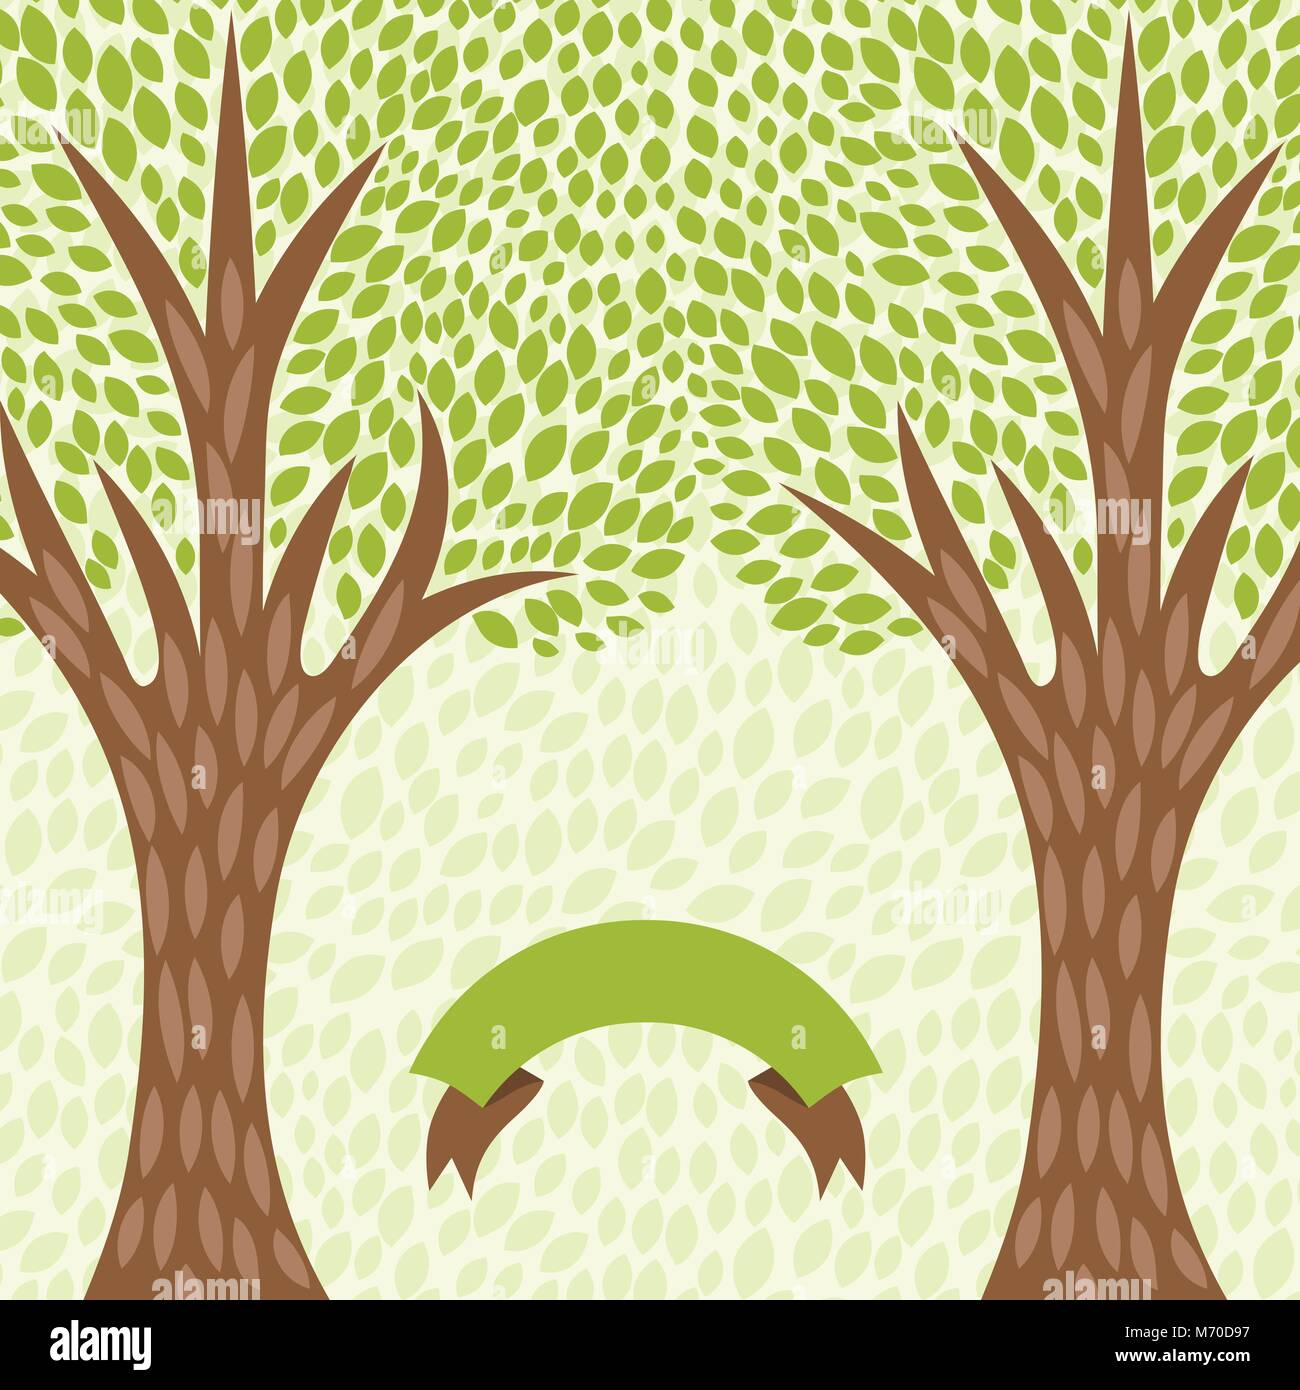 Abstract background with stylized trees in retro style - Stock Vector